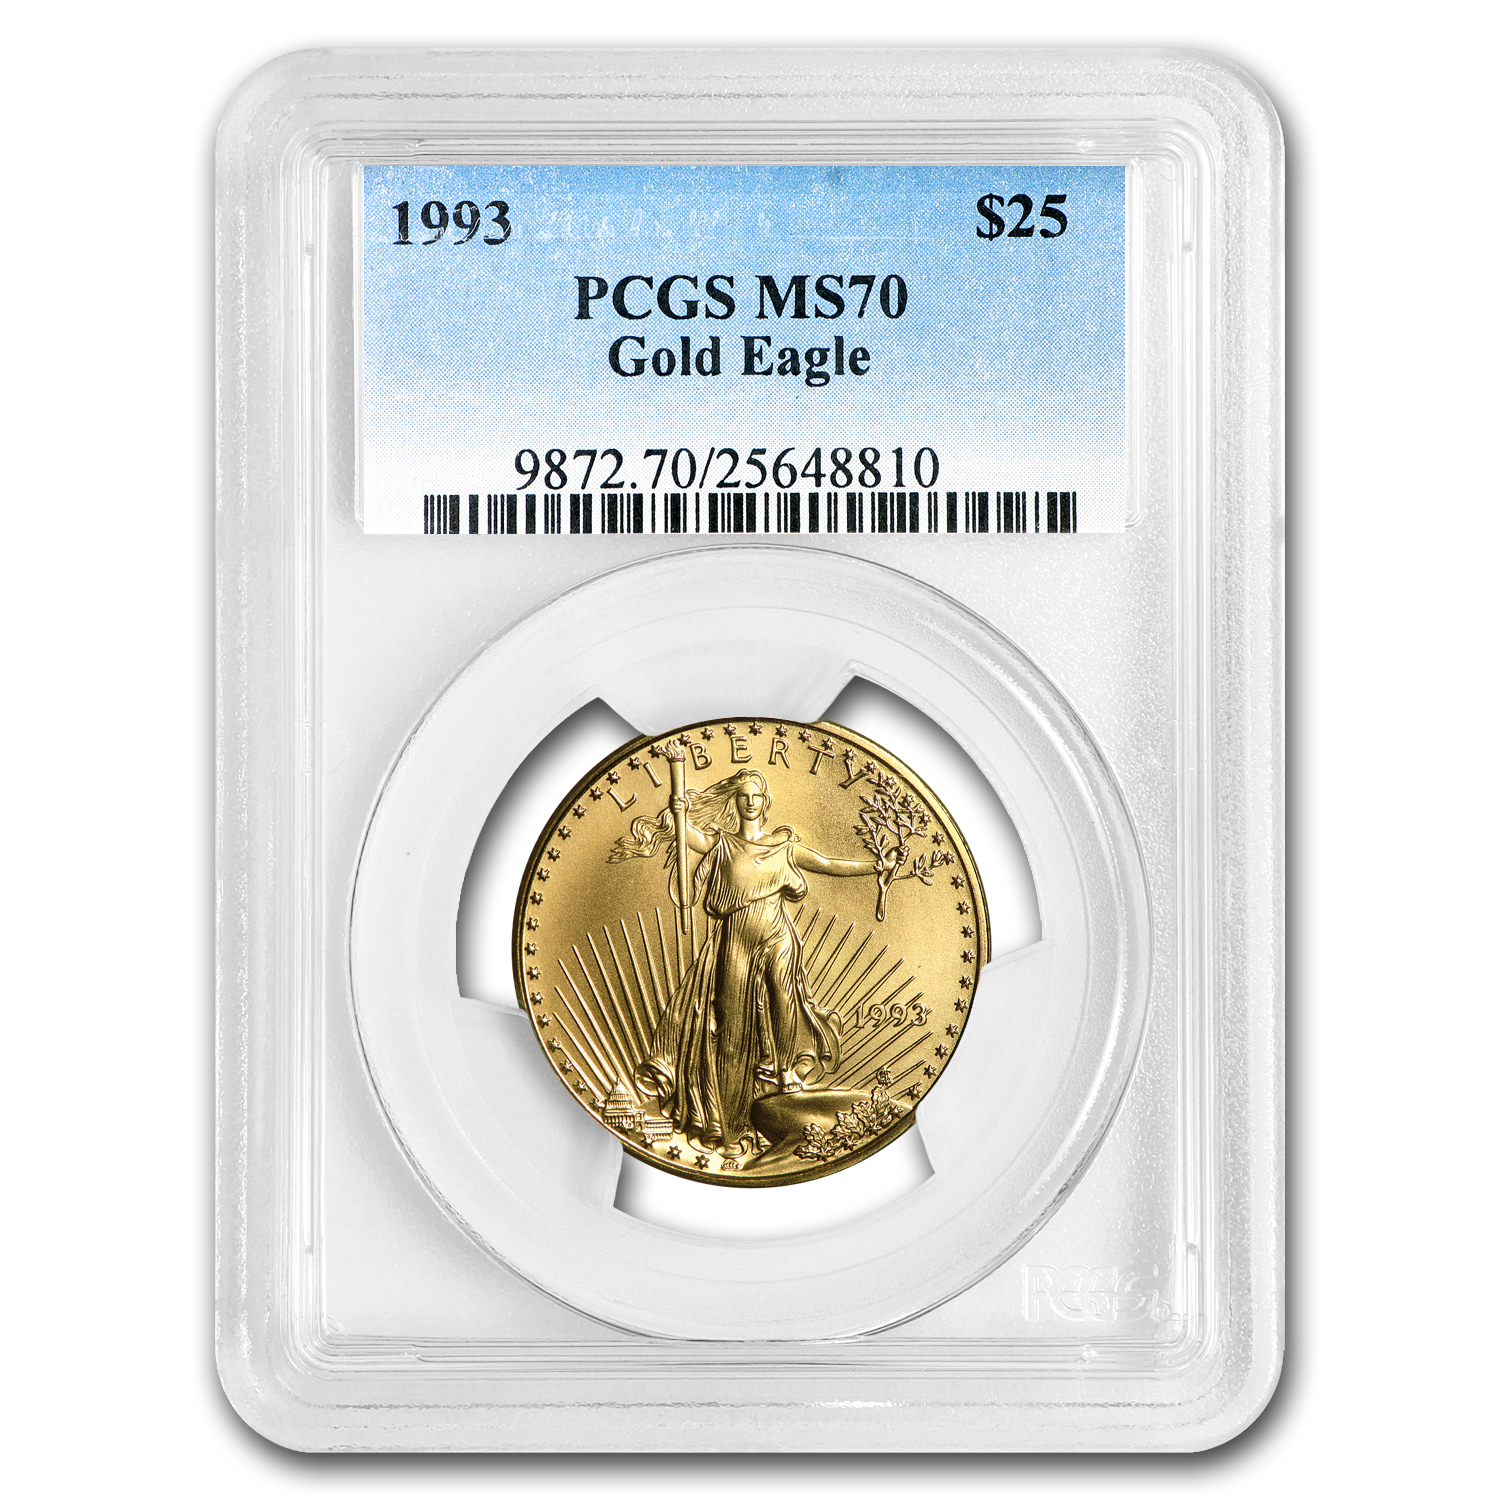 1993 1/2 oz Gold American Eagle MS-70 PCGS (Registry Set)